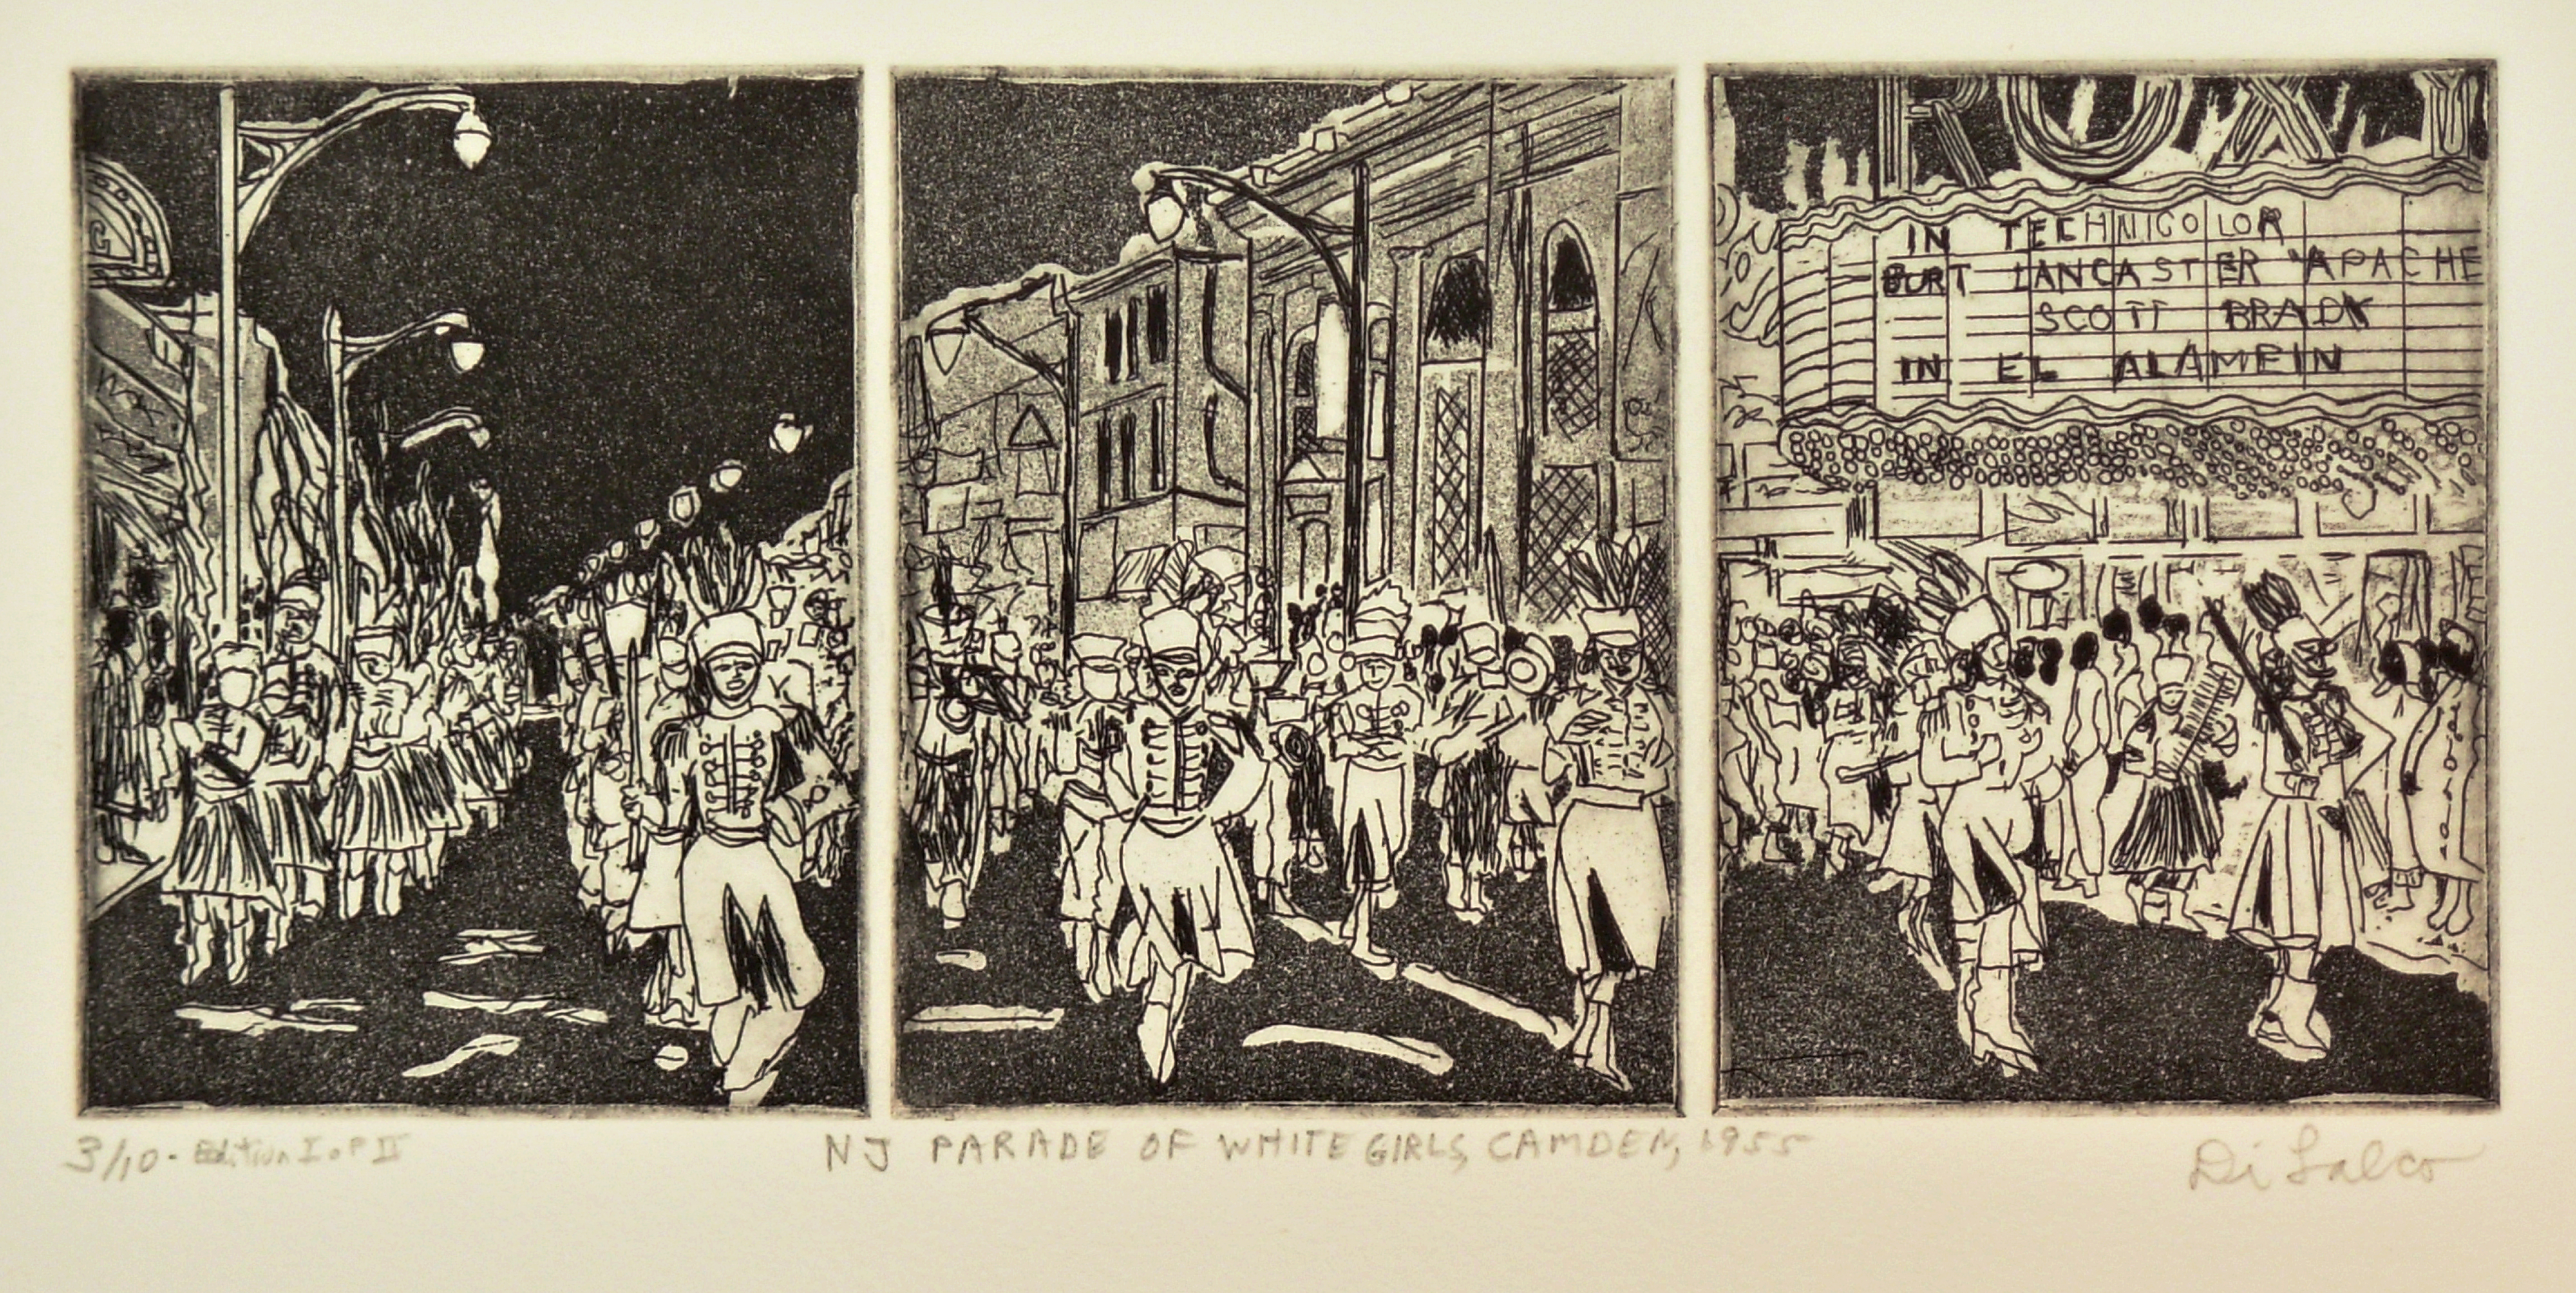 Jerry  Di Falco Artwork NEW JERSEY PARADE IN BLACK AND WHITE 1955, 2013 Intaglio, Americana